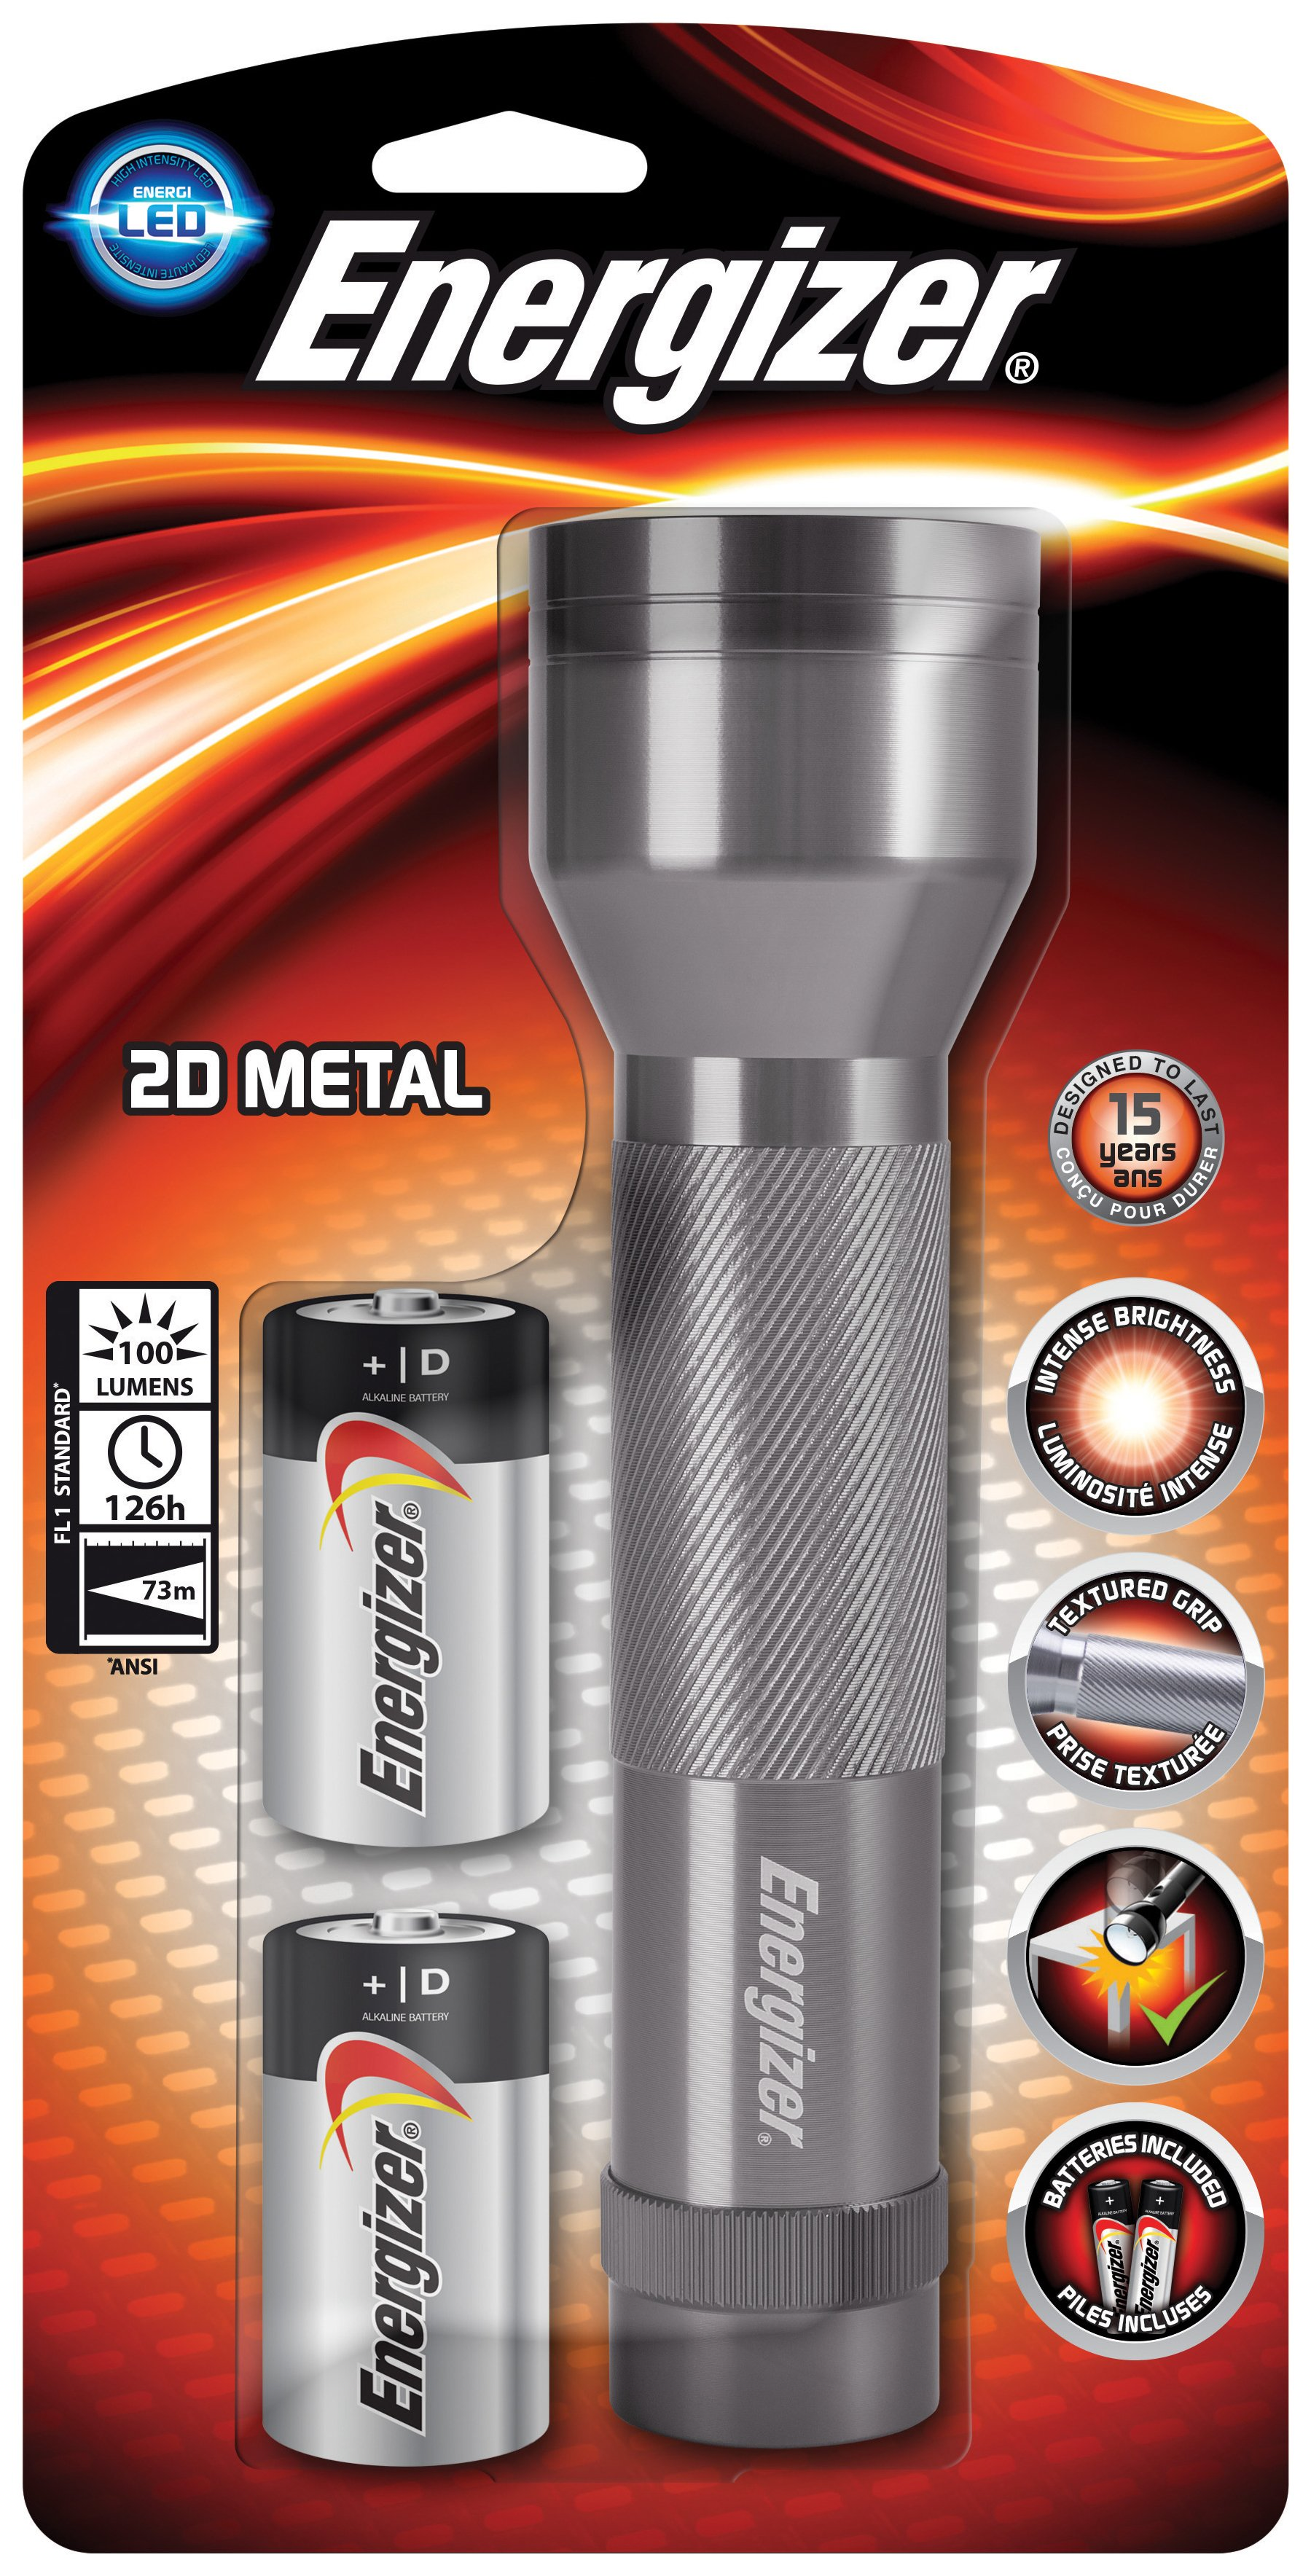 Energizer - 100 Lumen Metal Torch